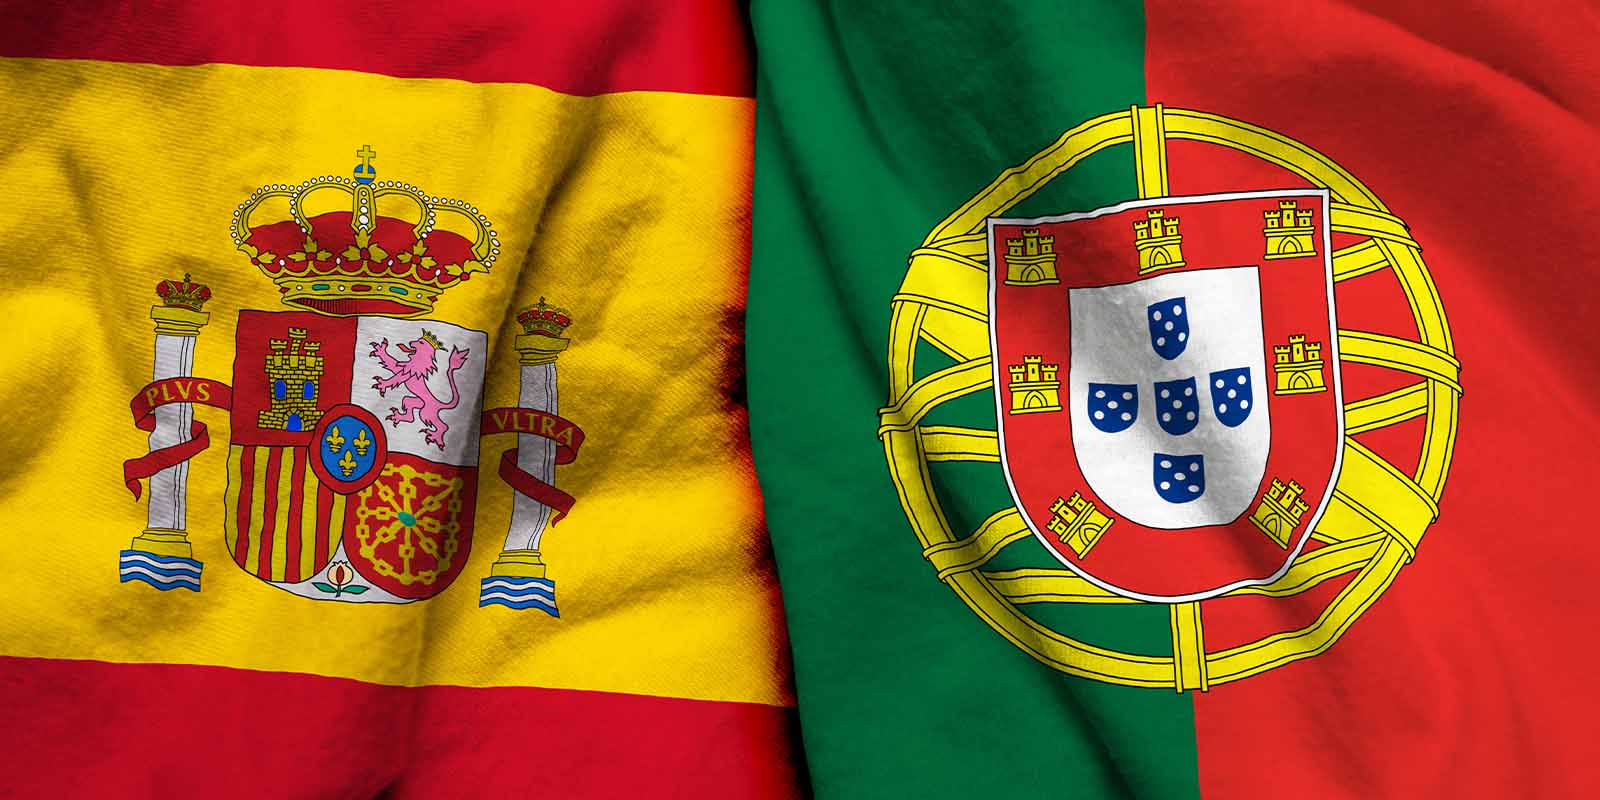 Portugal or Spain: Which Golden Visa Should You Pick